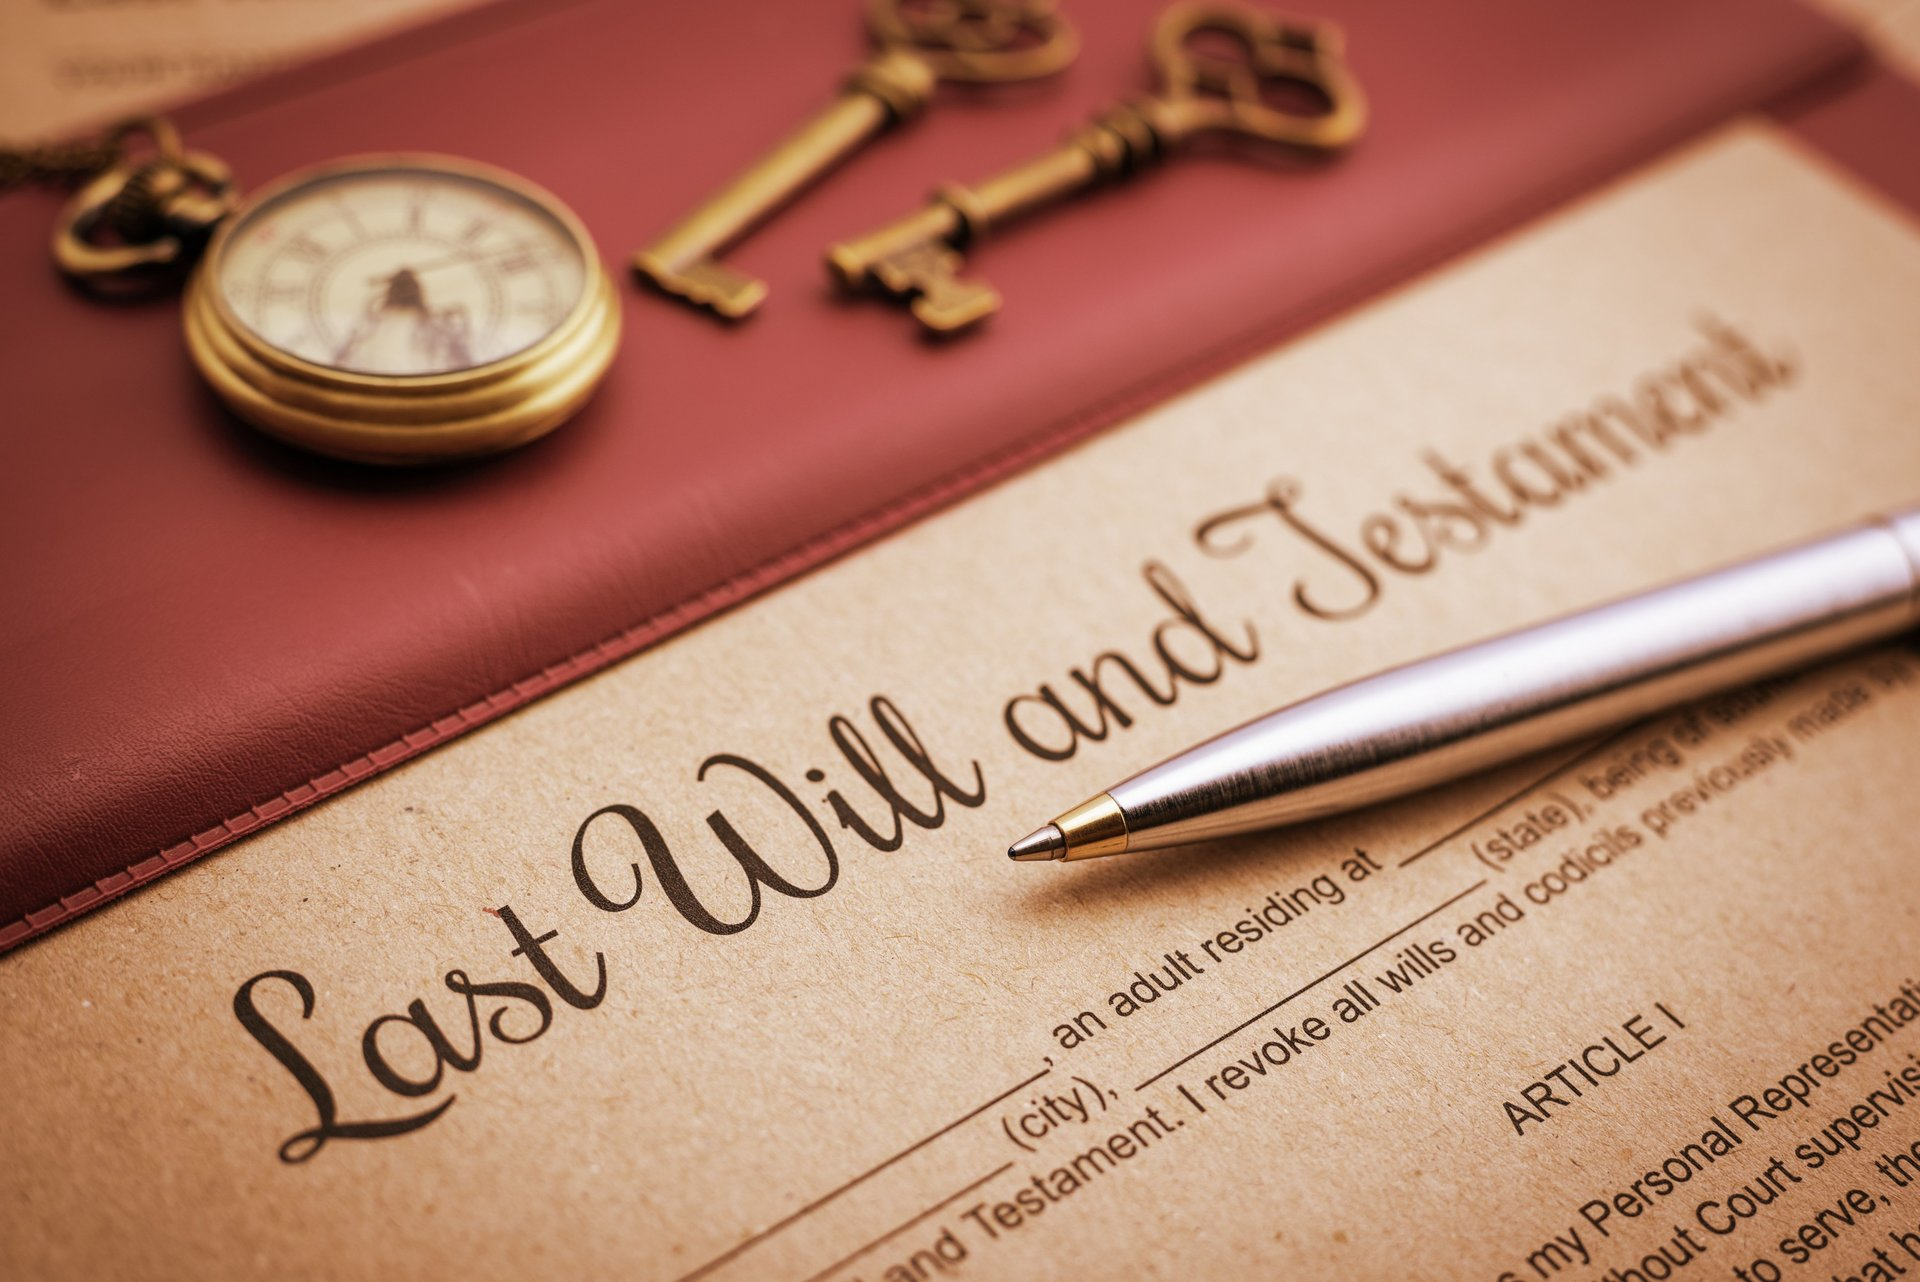 Probate services westminster wills st albans last will and testimony solutioingenieria Image collections